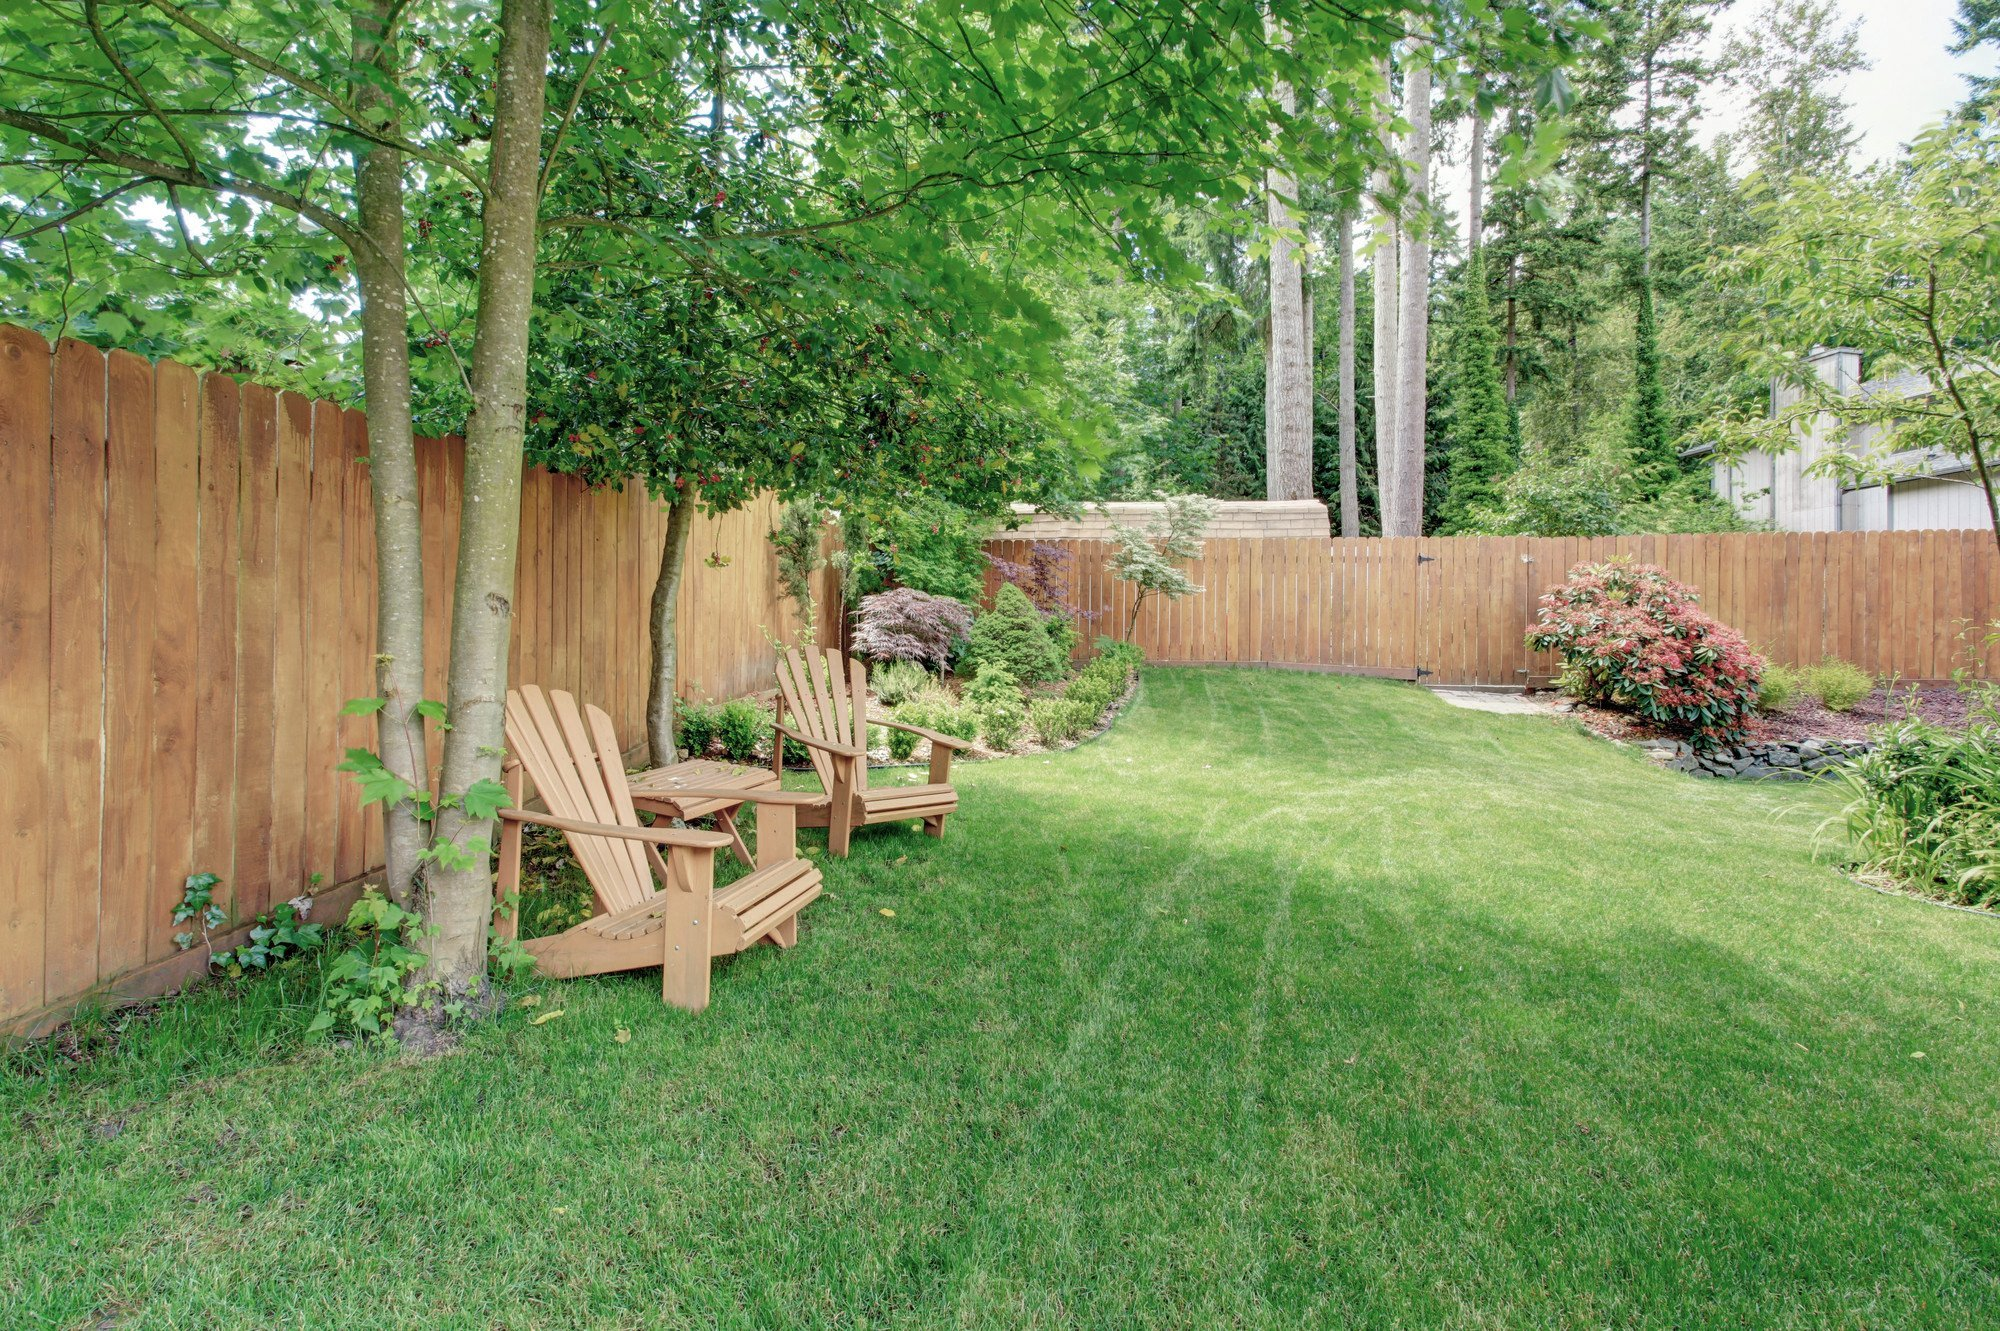 garden with wooden fence